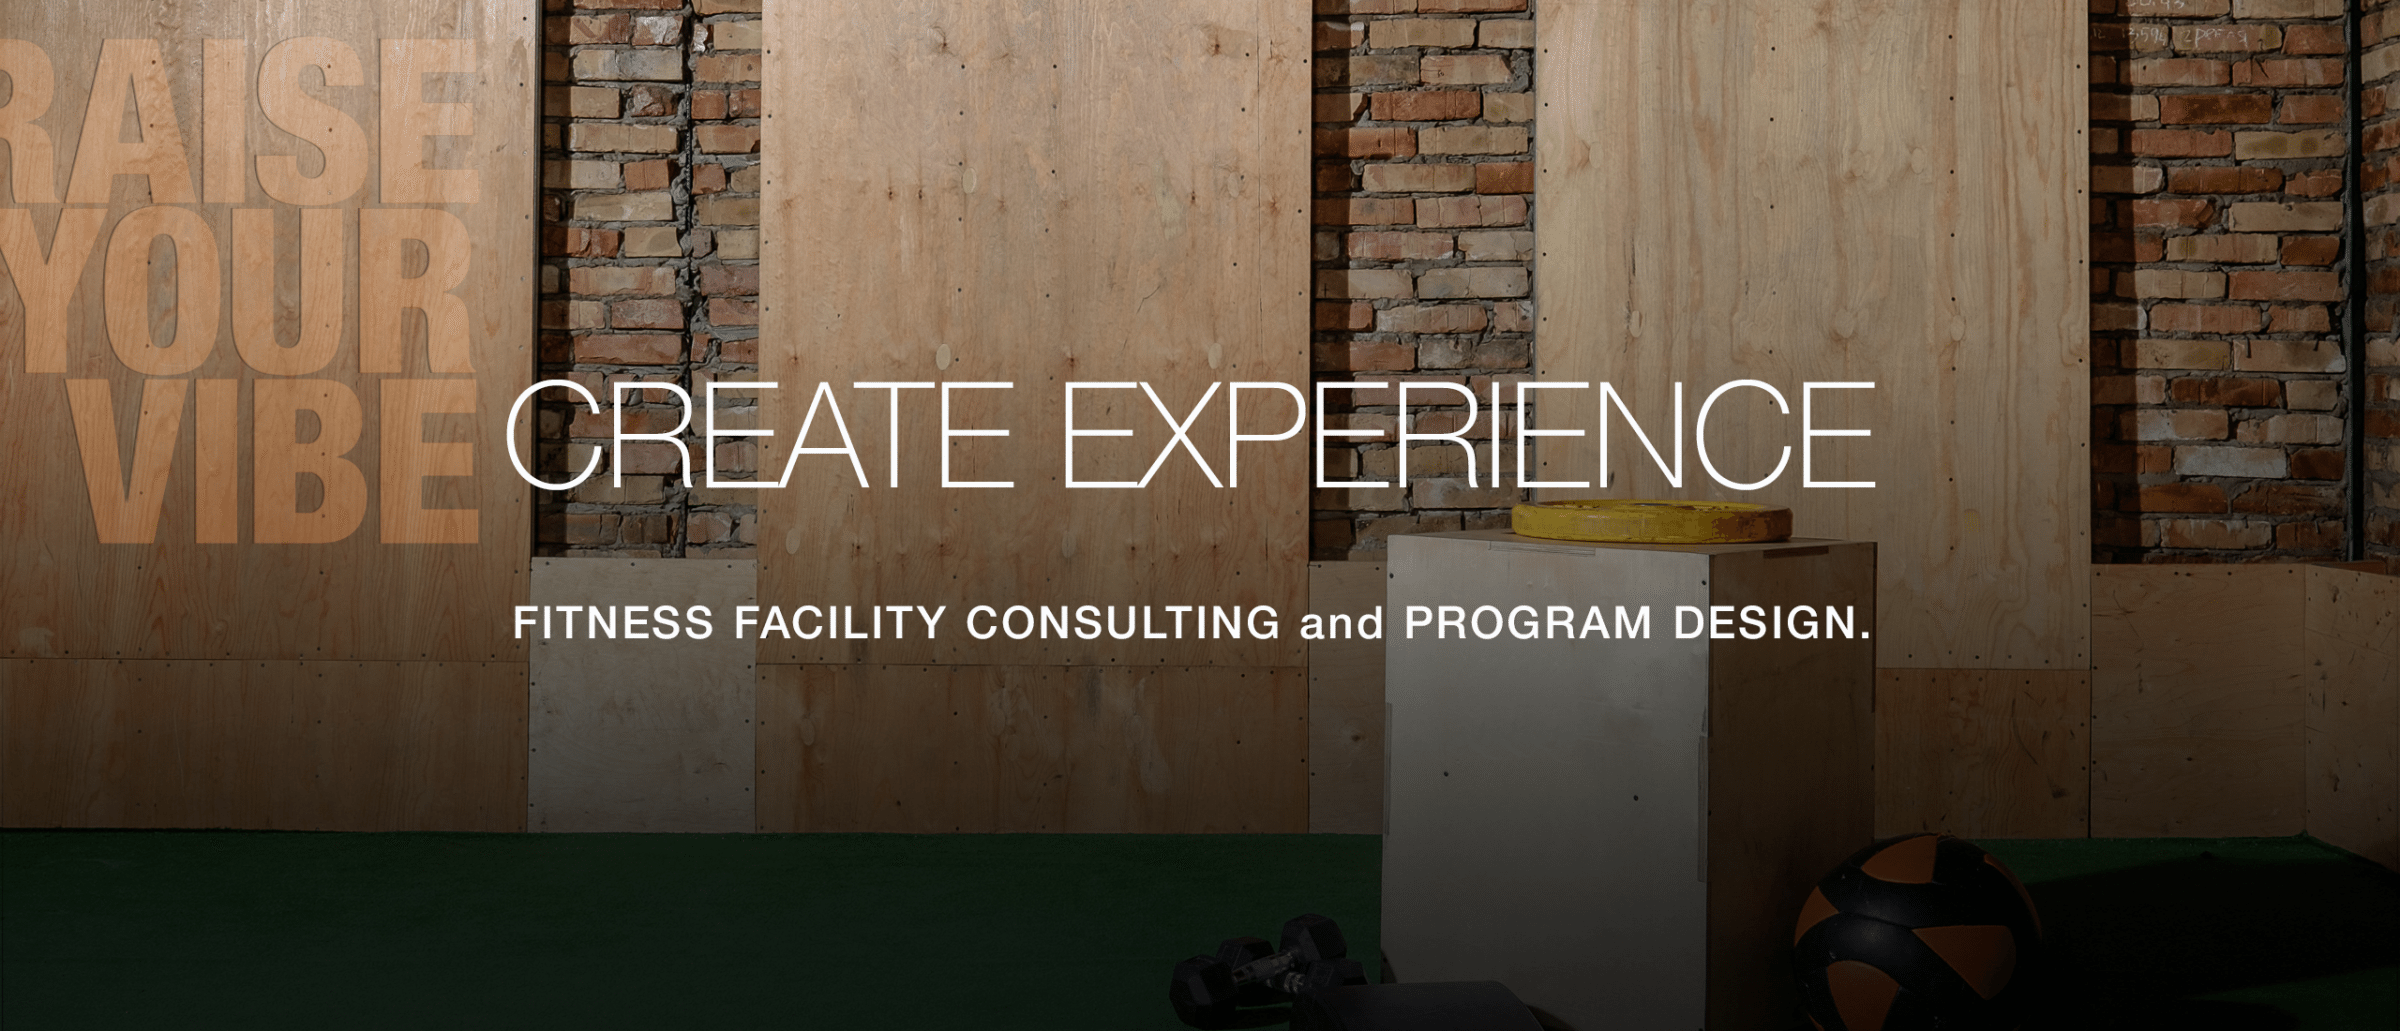 FITNESS FACILITY CONSULTING And PROGRAM DESIGN